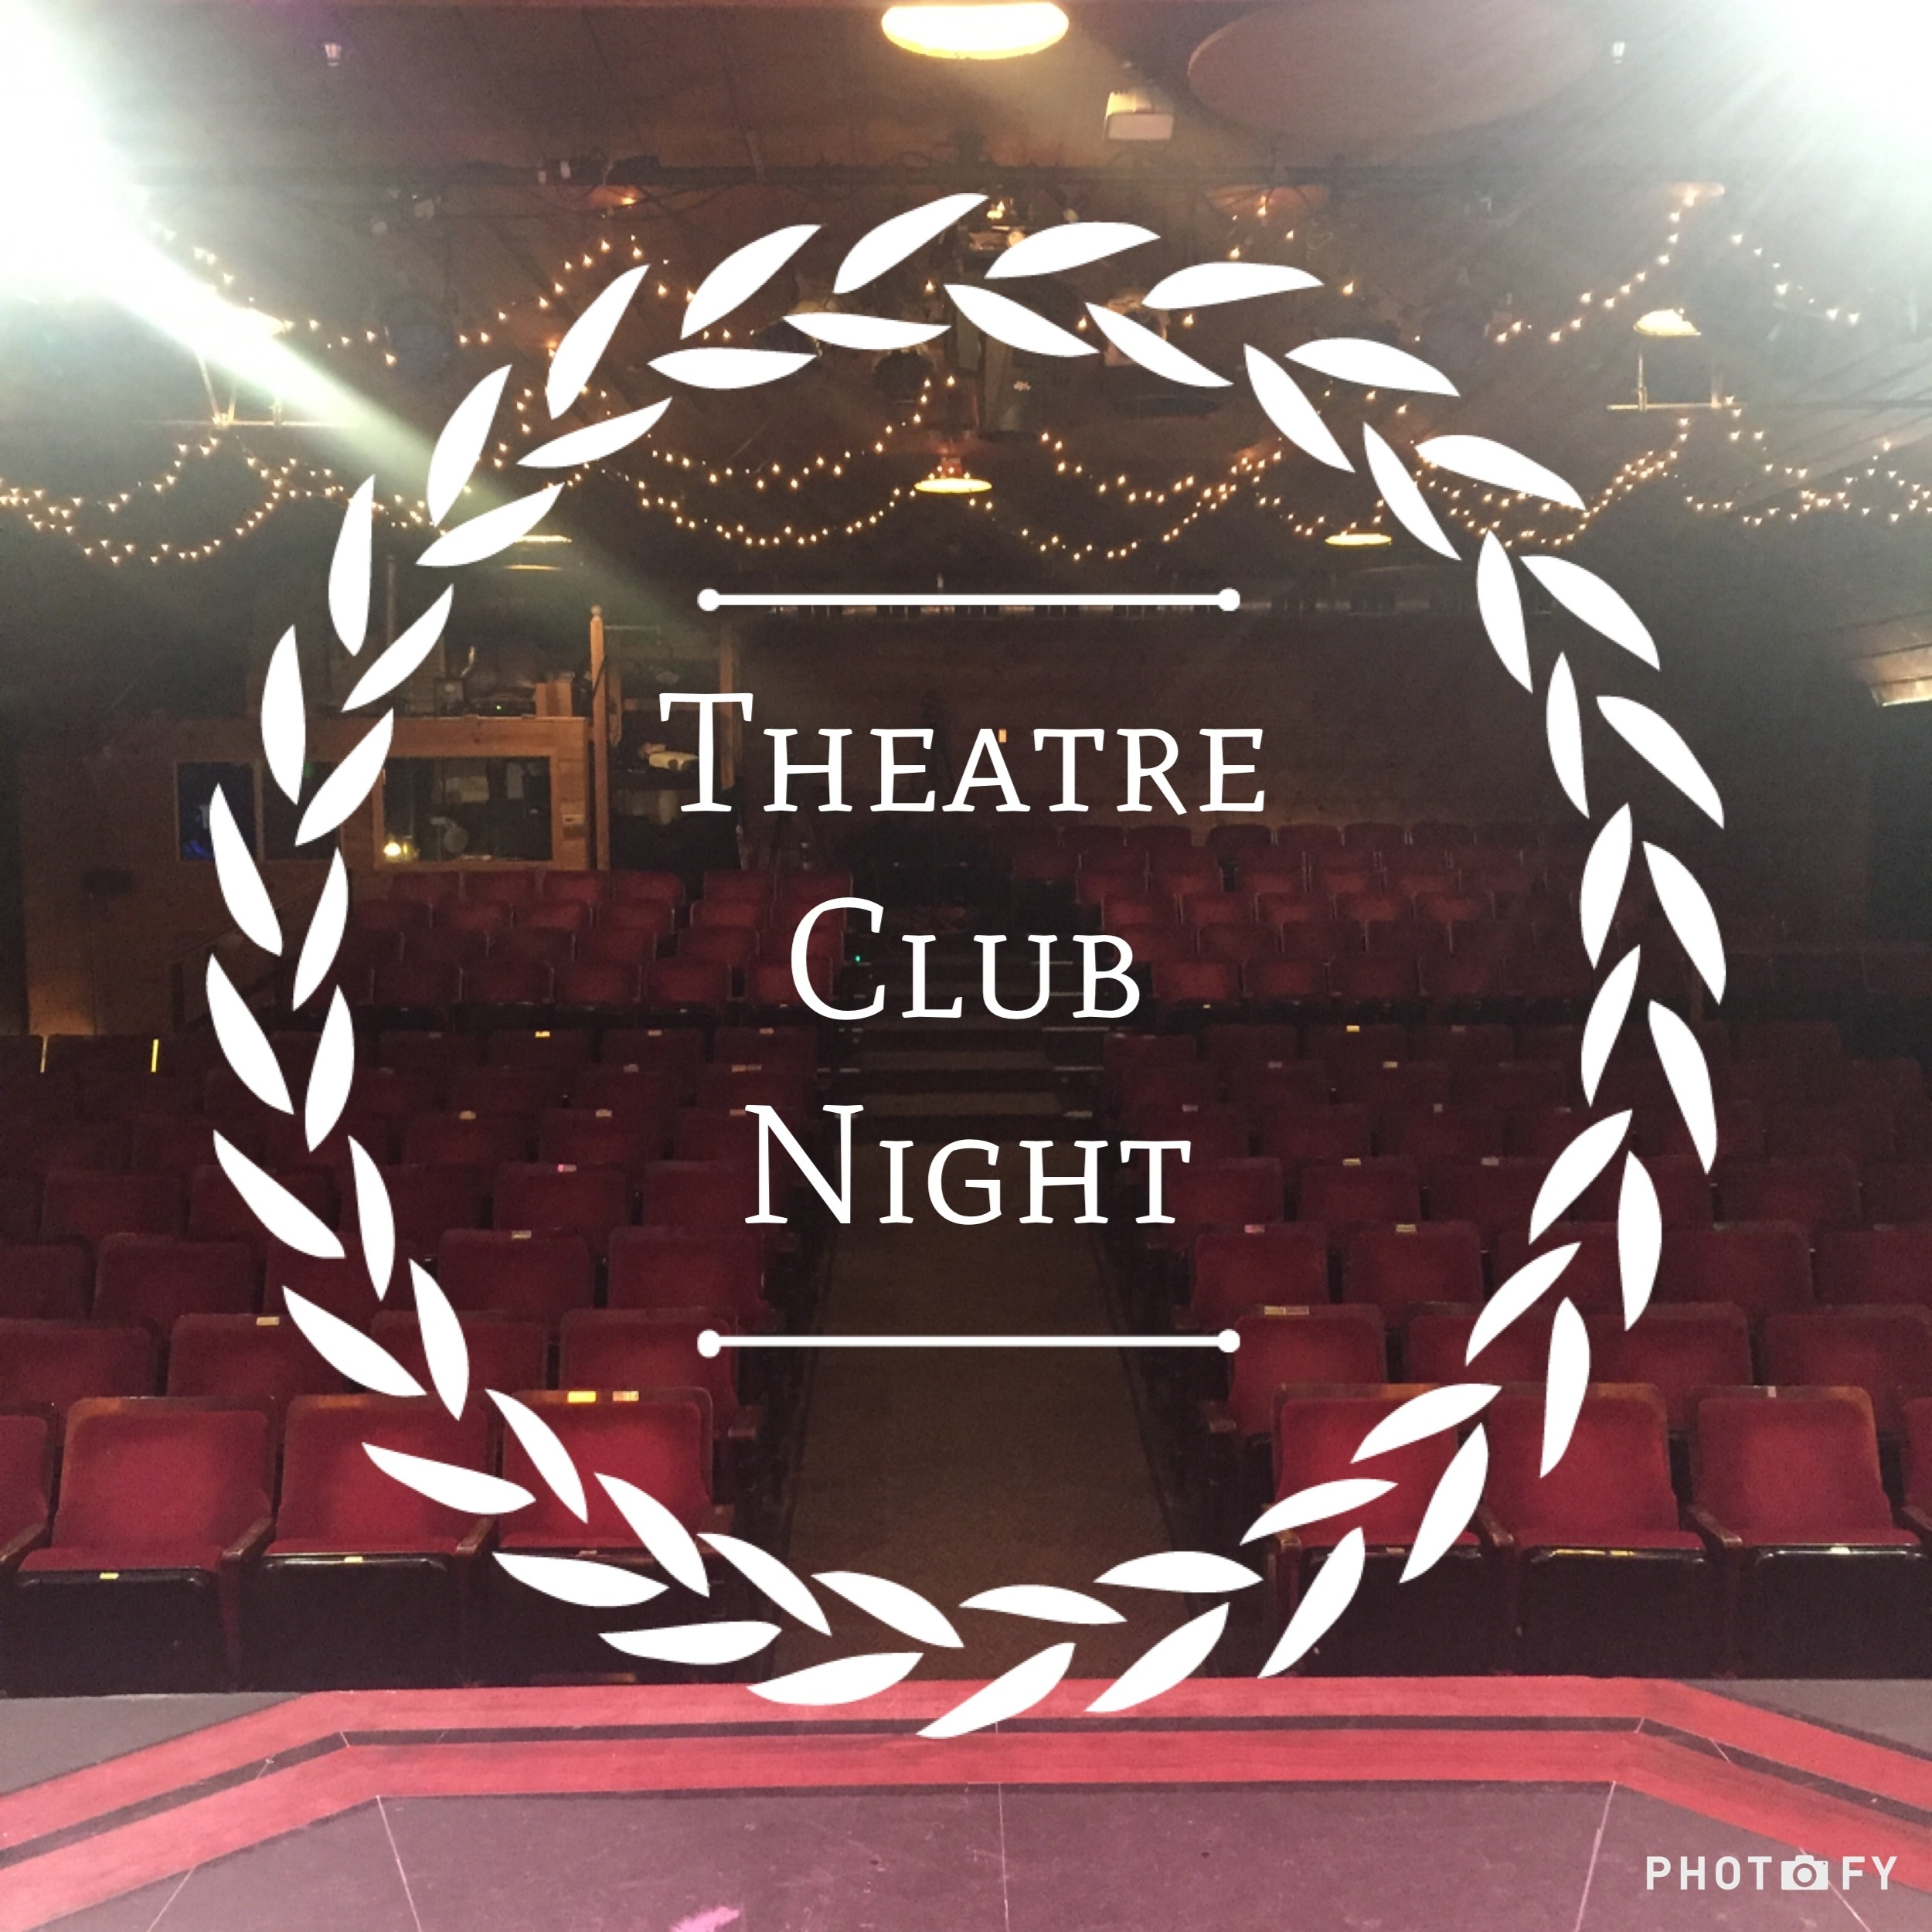 Theatre Club Night - Patrons are encouraged to stay after the performance for a free talkback with the cast and director.